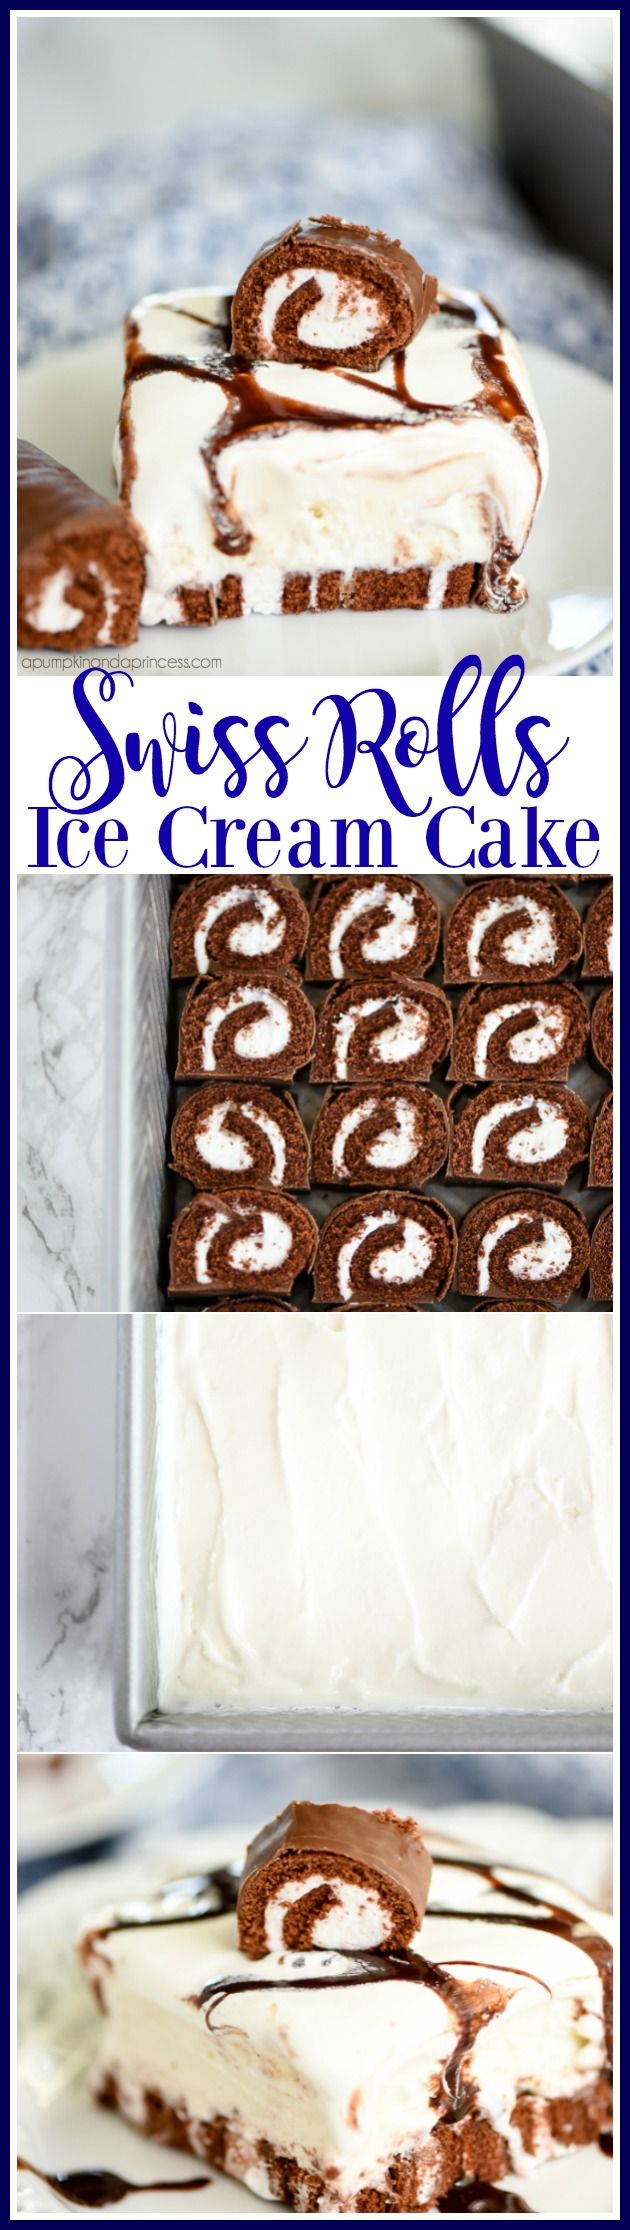 Swiss Rolls Ice Cream Cake - This easy ice cream cake recipe is perfect for summer! Layers of Swiss Rolls, vanilla ice cream, whipped cream and chocolate sauce. MichaelsMakers A Pumpkin And A Princess